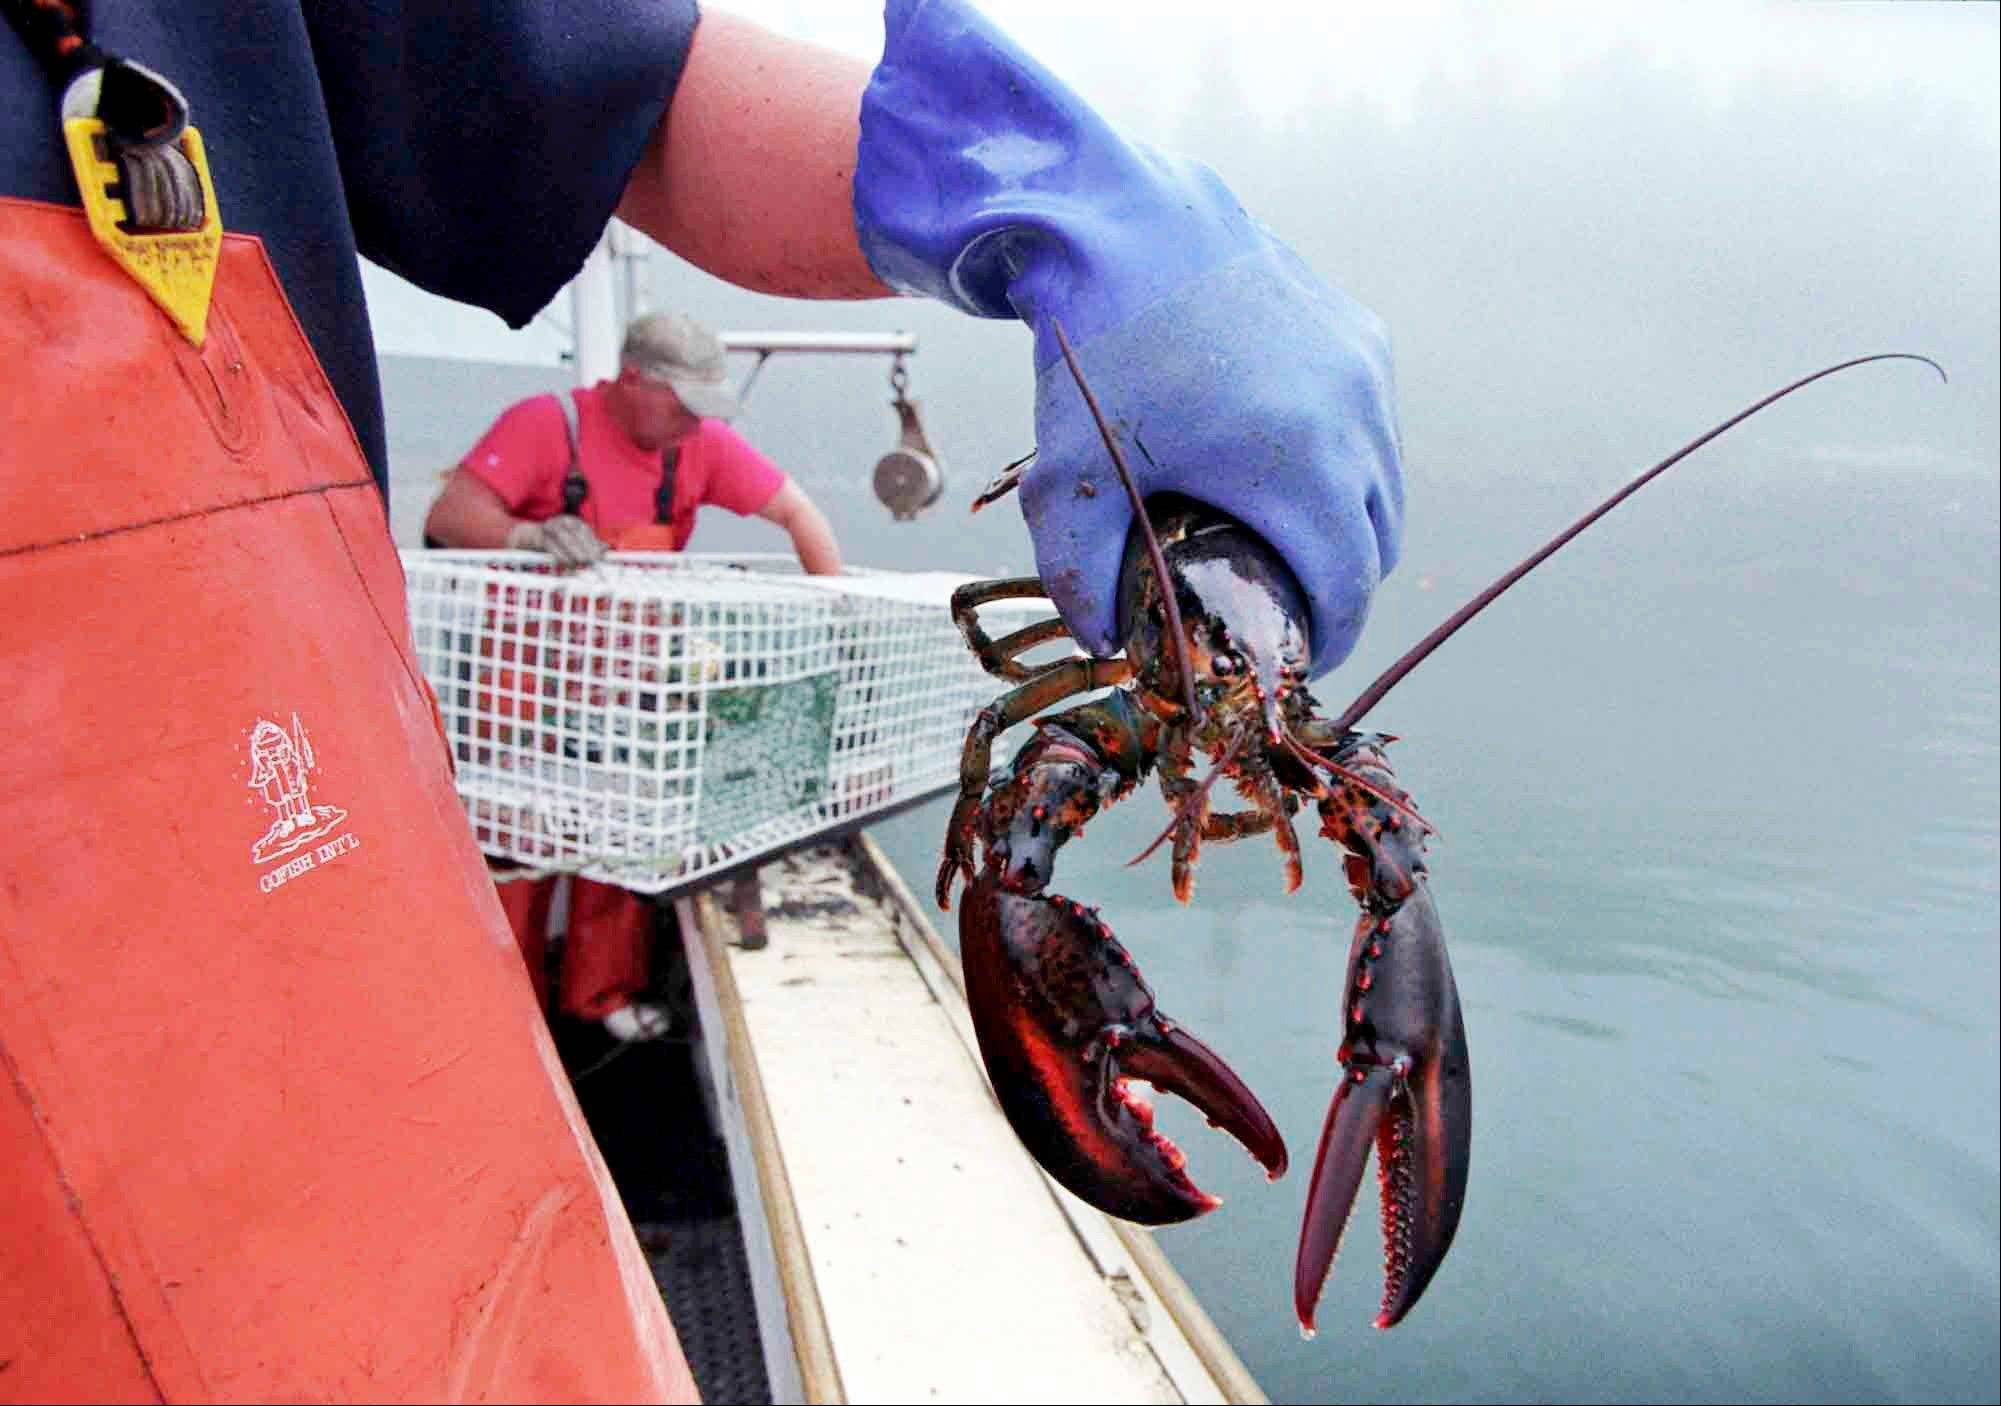 A sternman holds a lobster caught off South Bristol, Maine. In the coming months, a new marketing strategy will be launched that aims to bolster the brand and sales of Maine lobster.